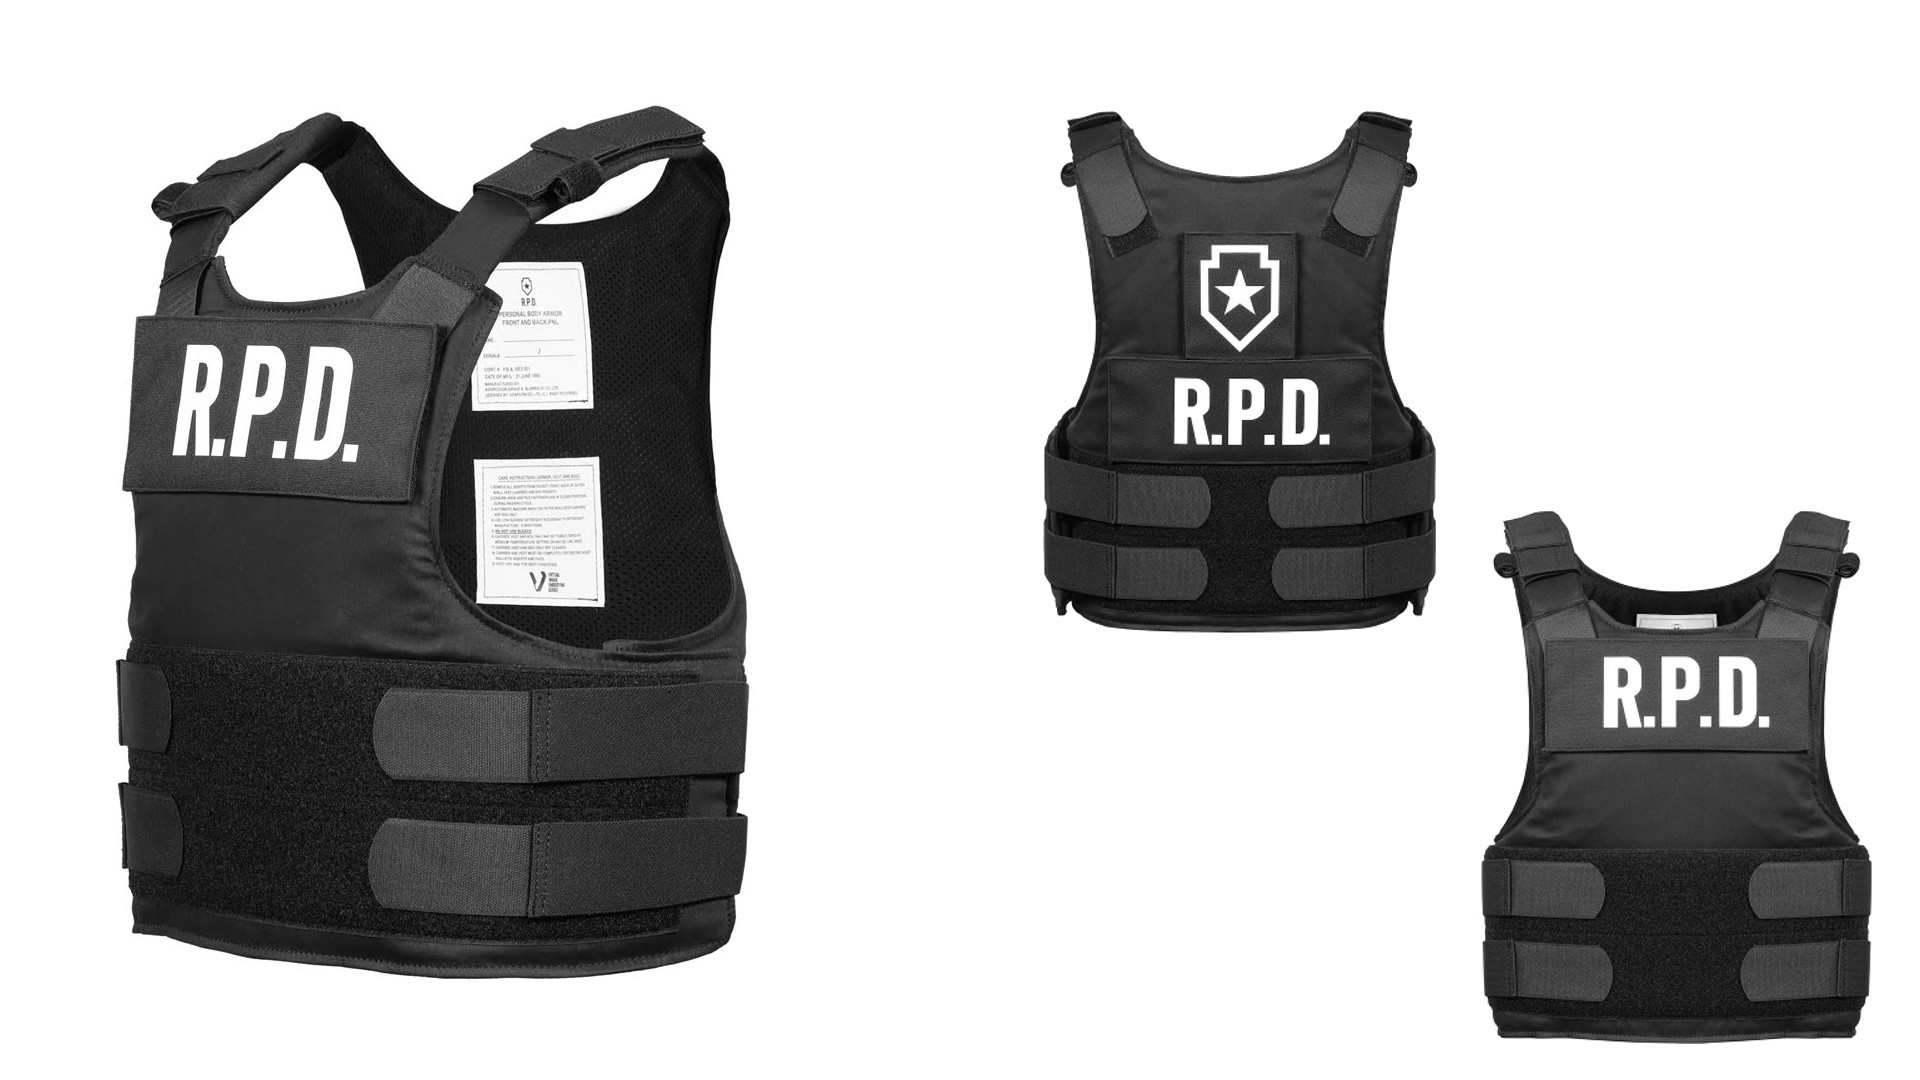 Real Life Resident Evil 2 Remake Vest Prepares You For The Zombie